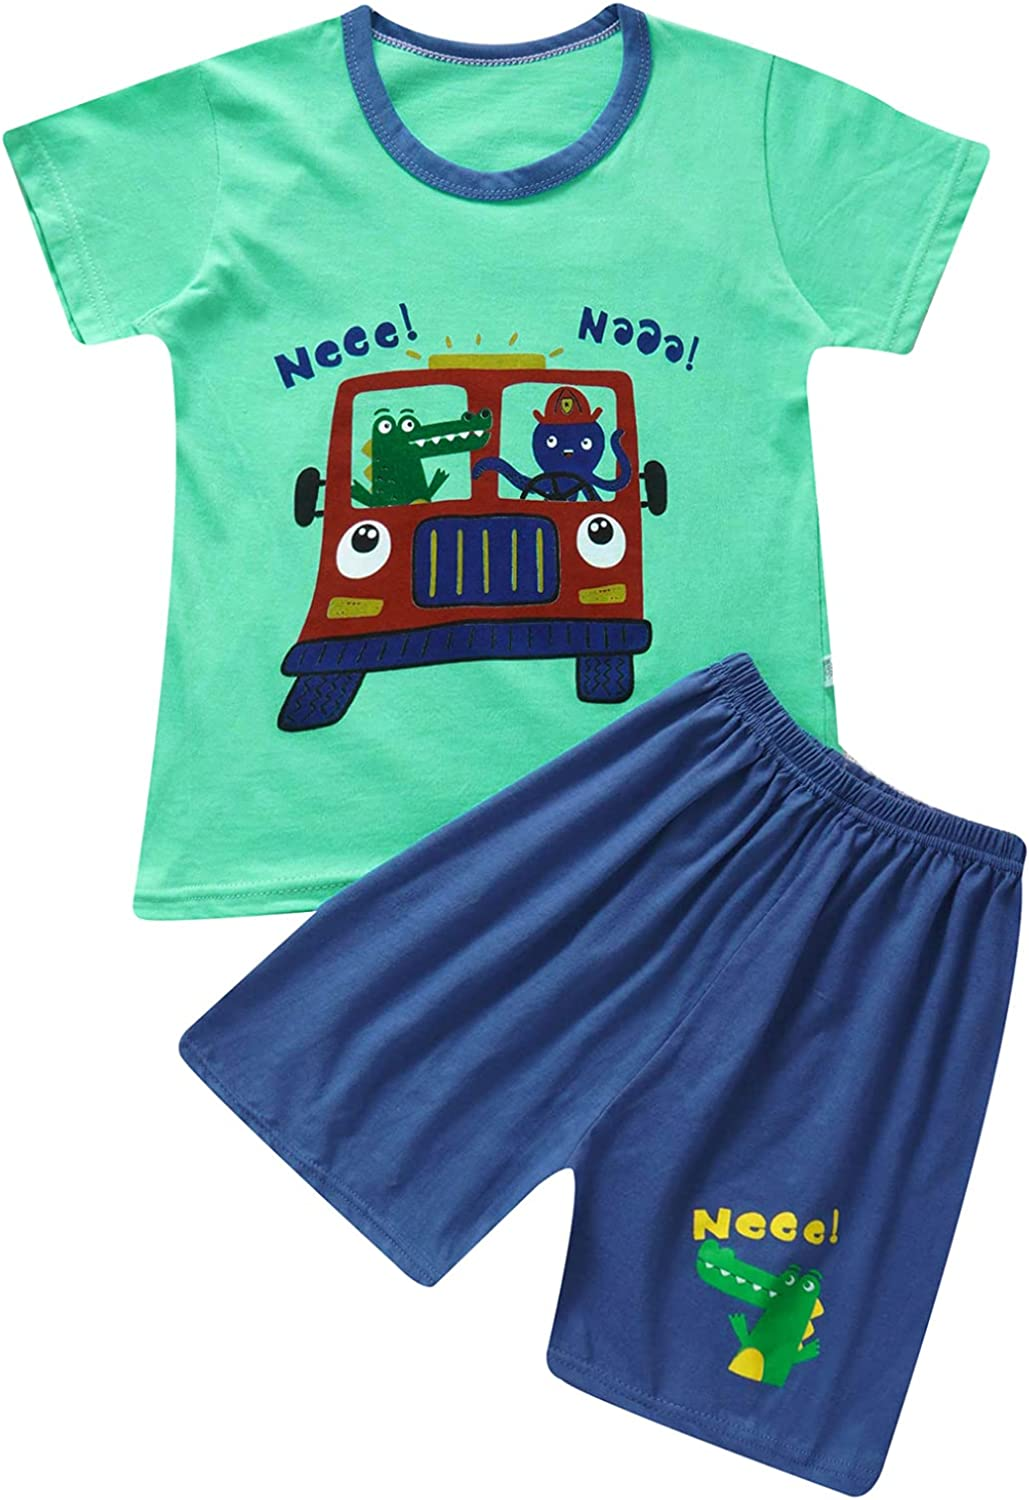 JanJean Kids Boys Summer Cotton Casual Clothes Outfit Short Sleeve Cartoon Print T-Shirt Top with Shorts Set 2-10 Years